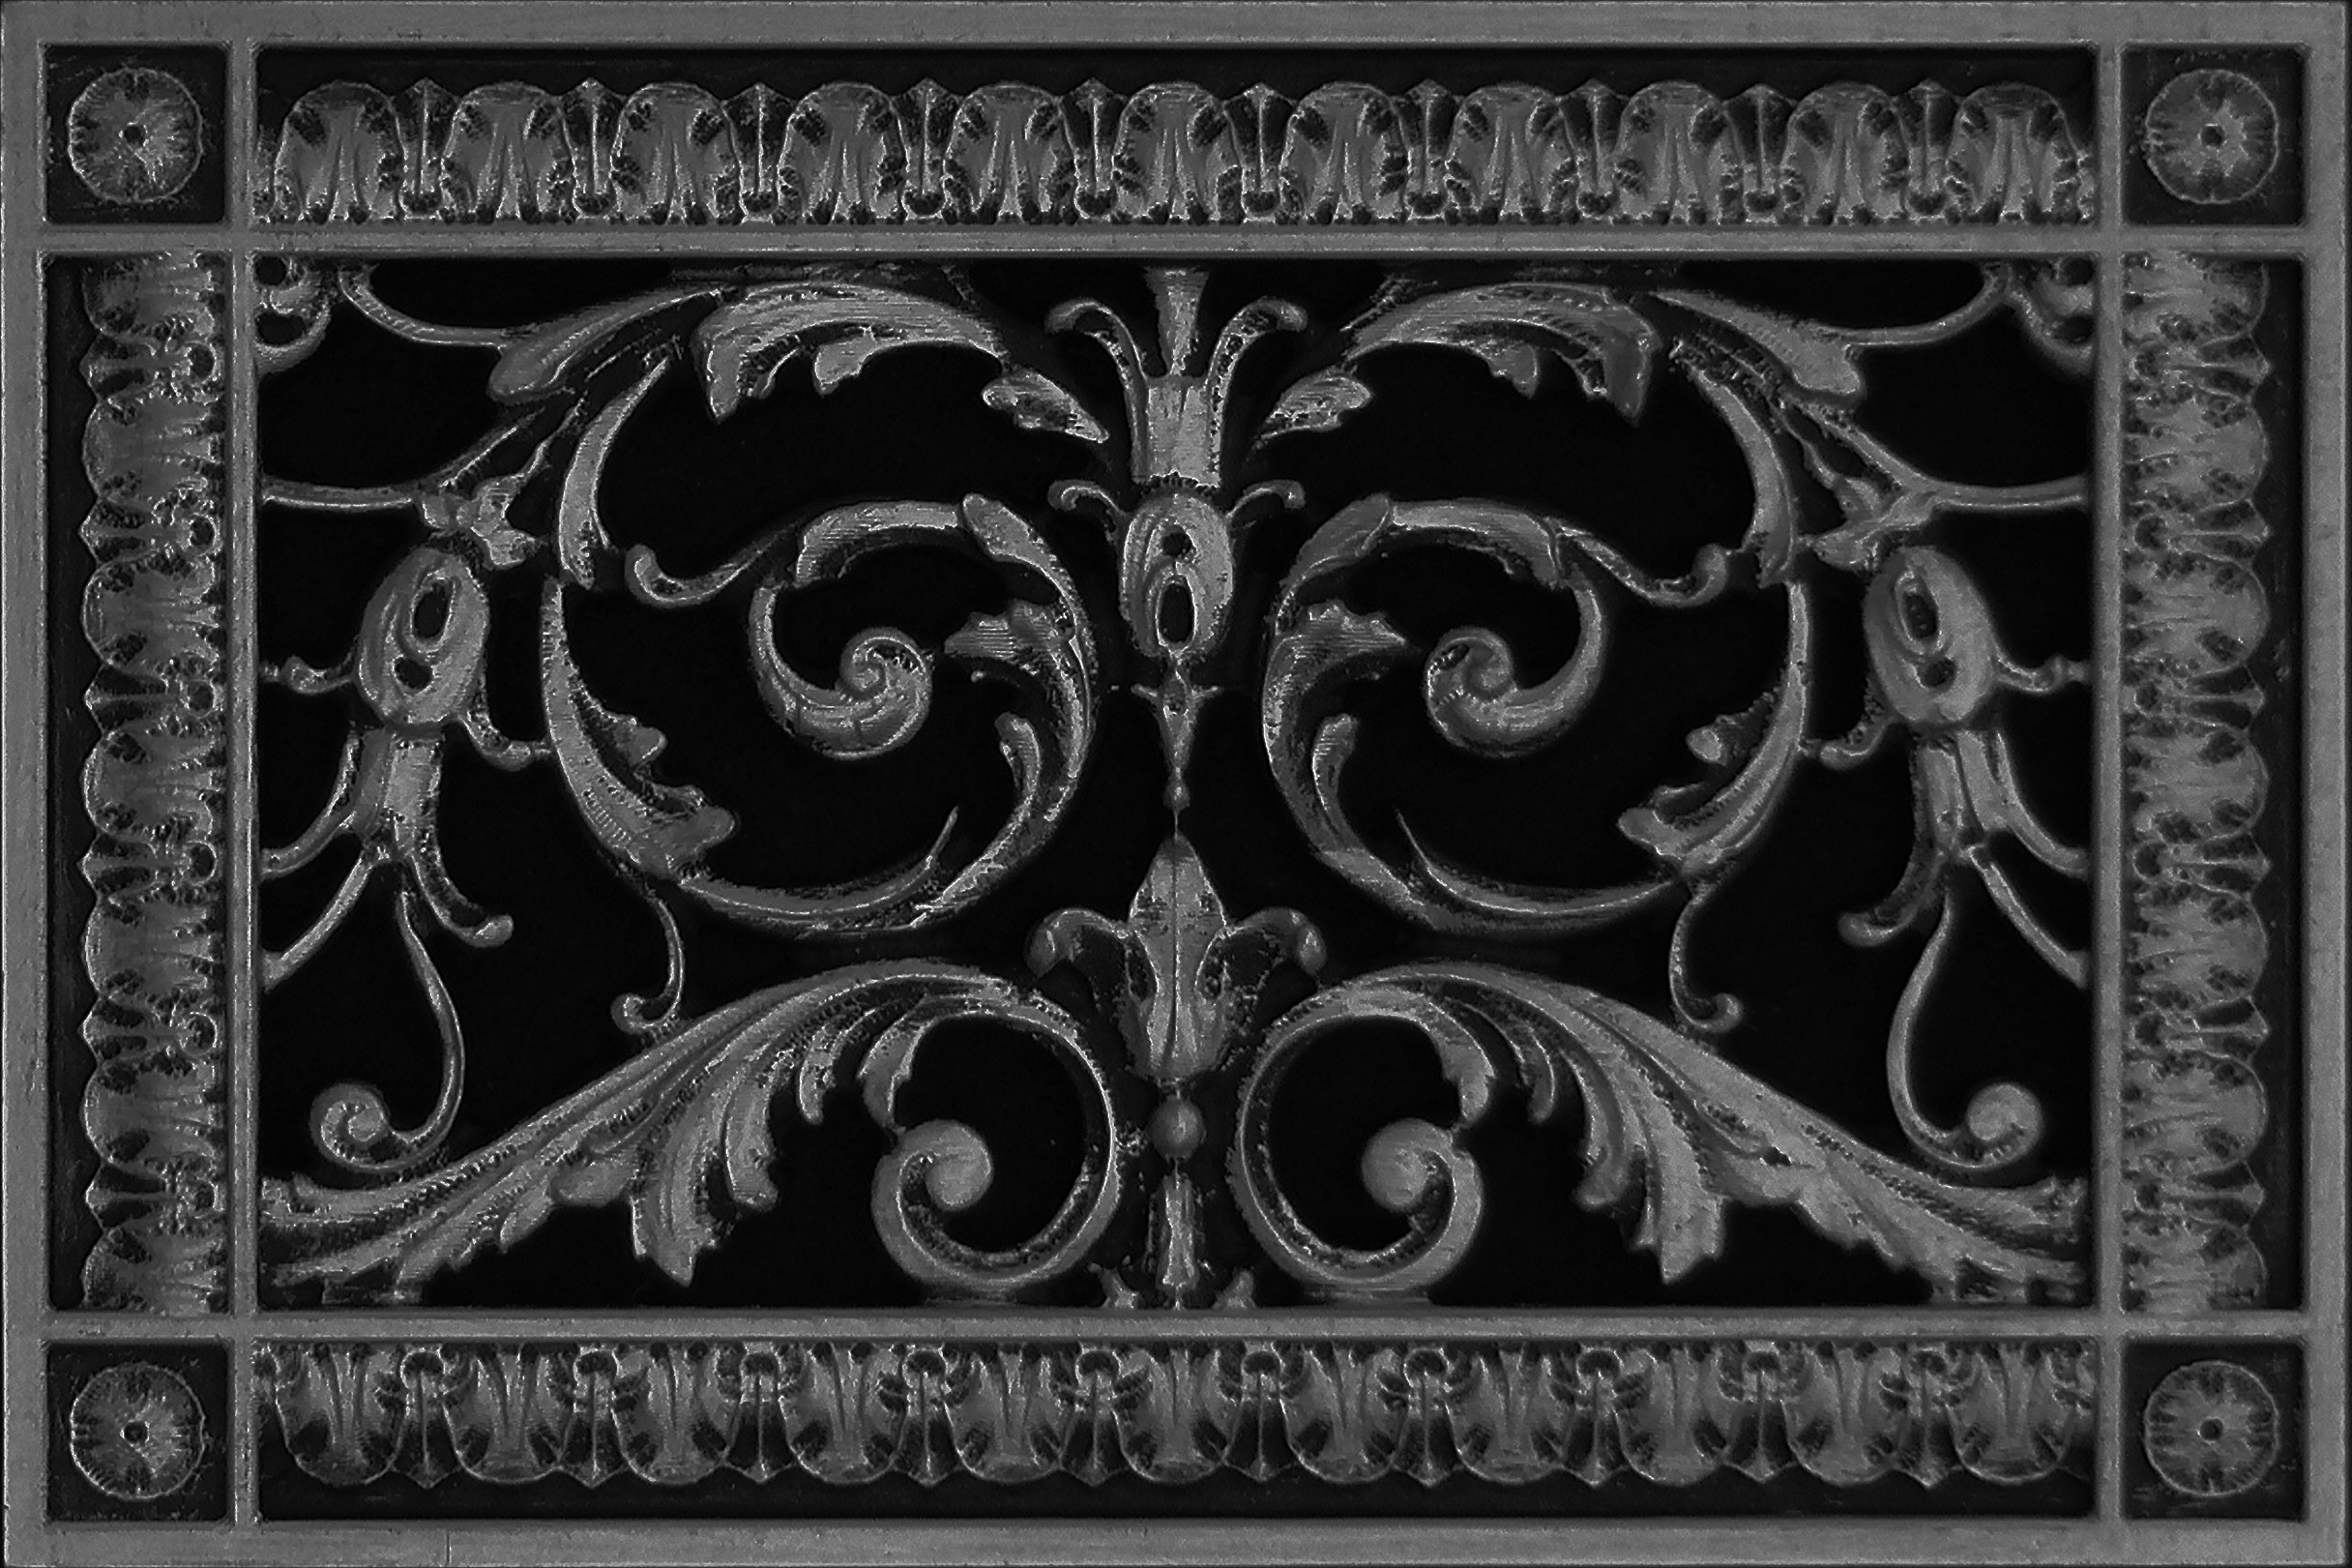 "Decorative Vent Cover, Grille, Return Register, Made of Urethane Resin, in French Style fits Over a 6""x 10"" Duct Opening. Total Size, 8"" x 12"", for Walls & Ceilings only(not Floors) (Black)"